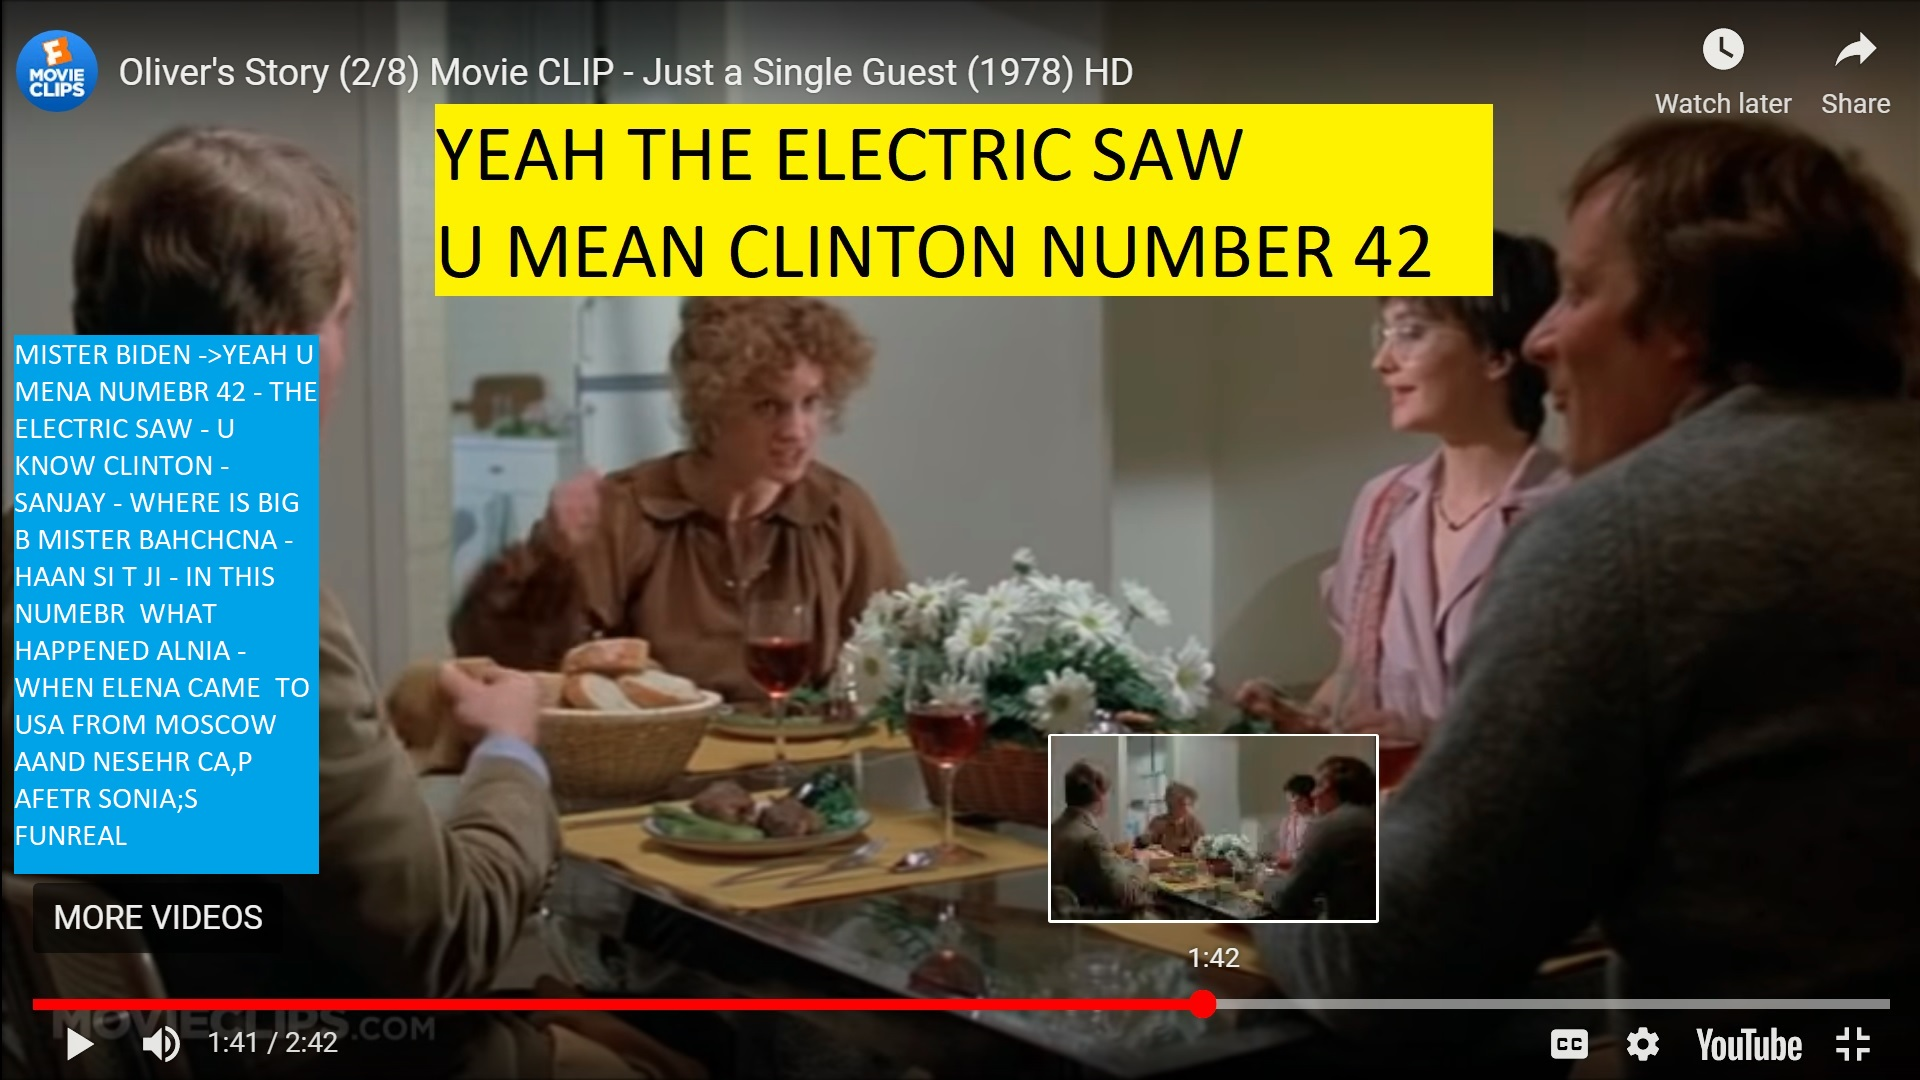 MISTER BIDEN ->YEAH U MENA NUMEBR 42 - THE ELECTRIC SAW - U KNOW CLINTON - SANJAY - WHERE IS BIG B MISTER BAHCHCNA - HAAN SI T JI - IN THIS NUMEBR WHAT HAPPENED ALNIA - WHEN ELENA CAME TO USA FROM MOSCOW AAND NESEHR CA,P AFETR SONIA;S FUNREAL